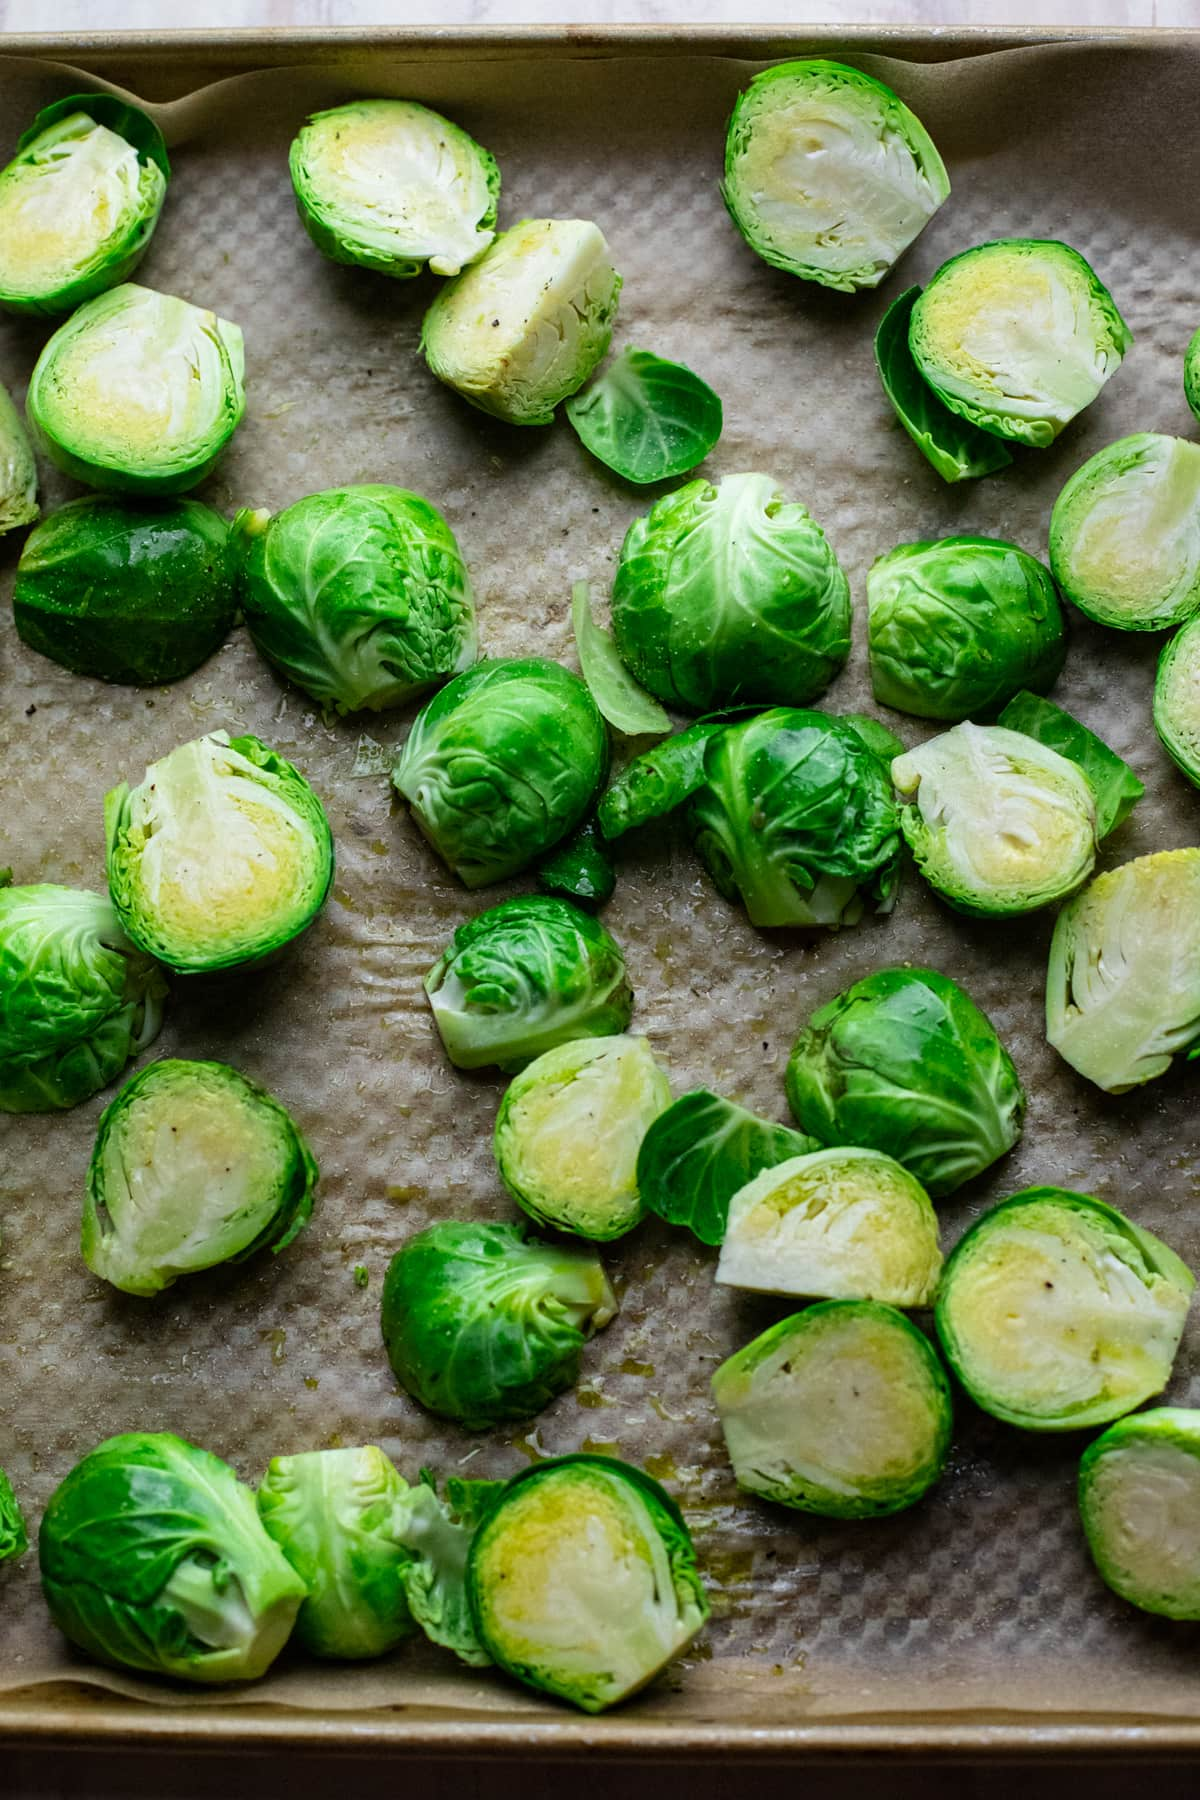 Sliced brussels sprouts on baking tray lined with parchment paper.